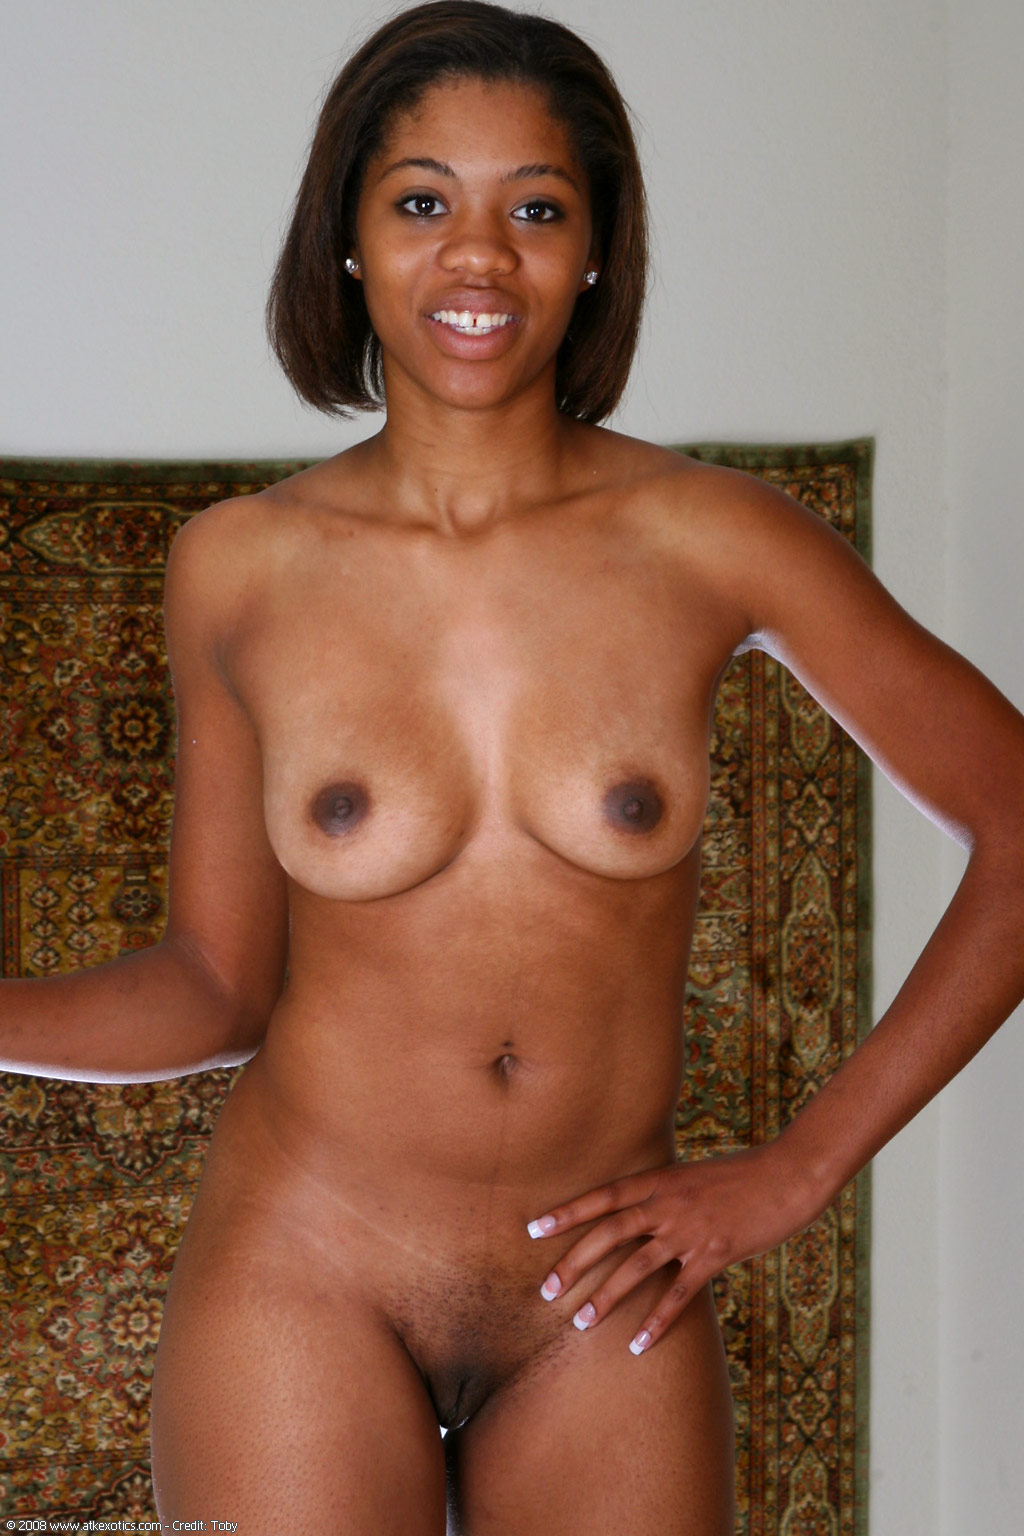 Naked black chick that arent to dark necessary